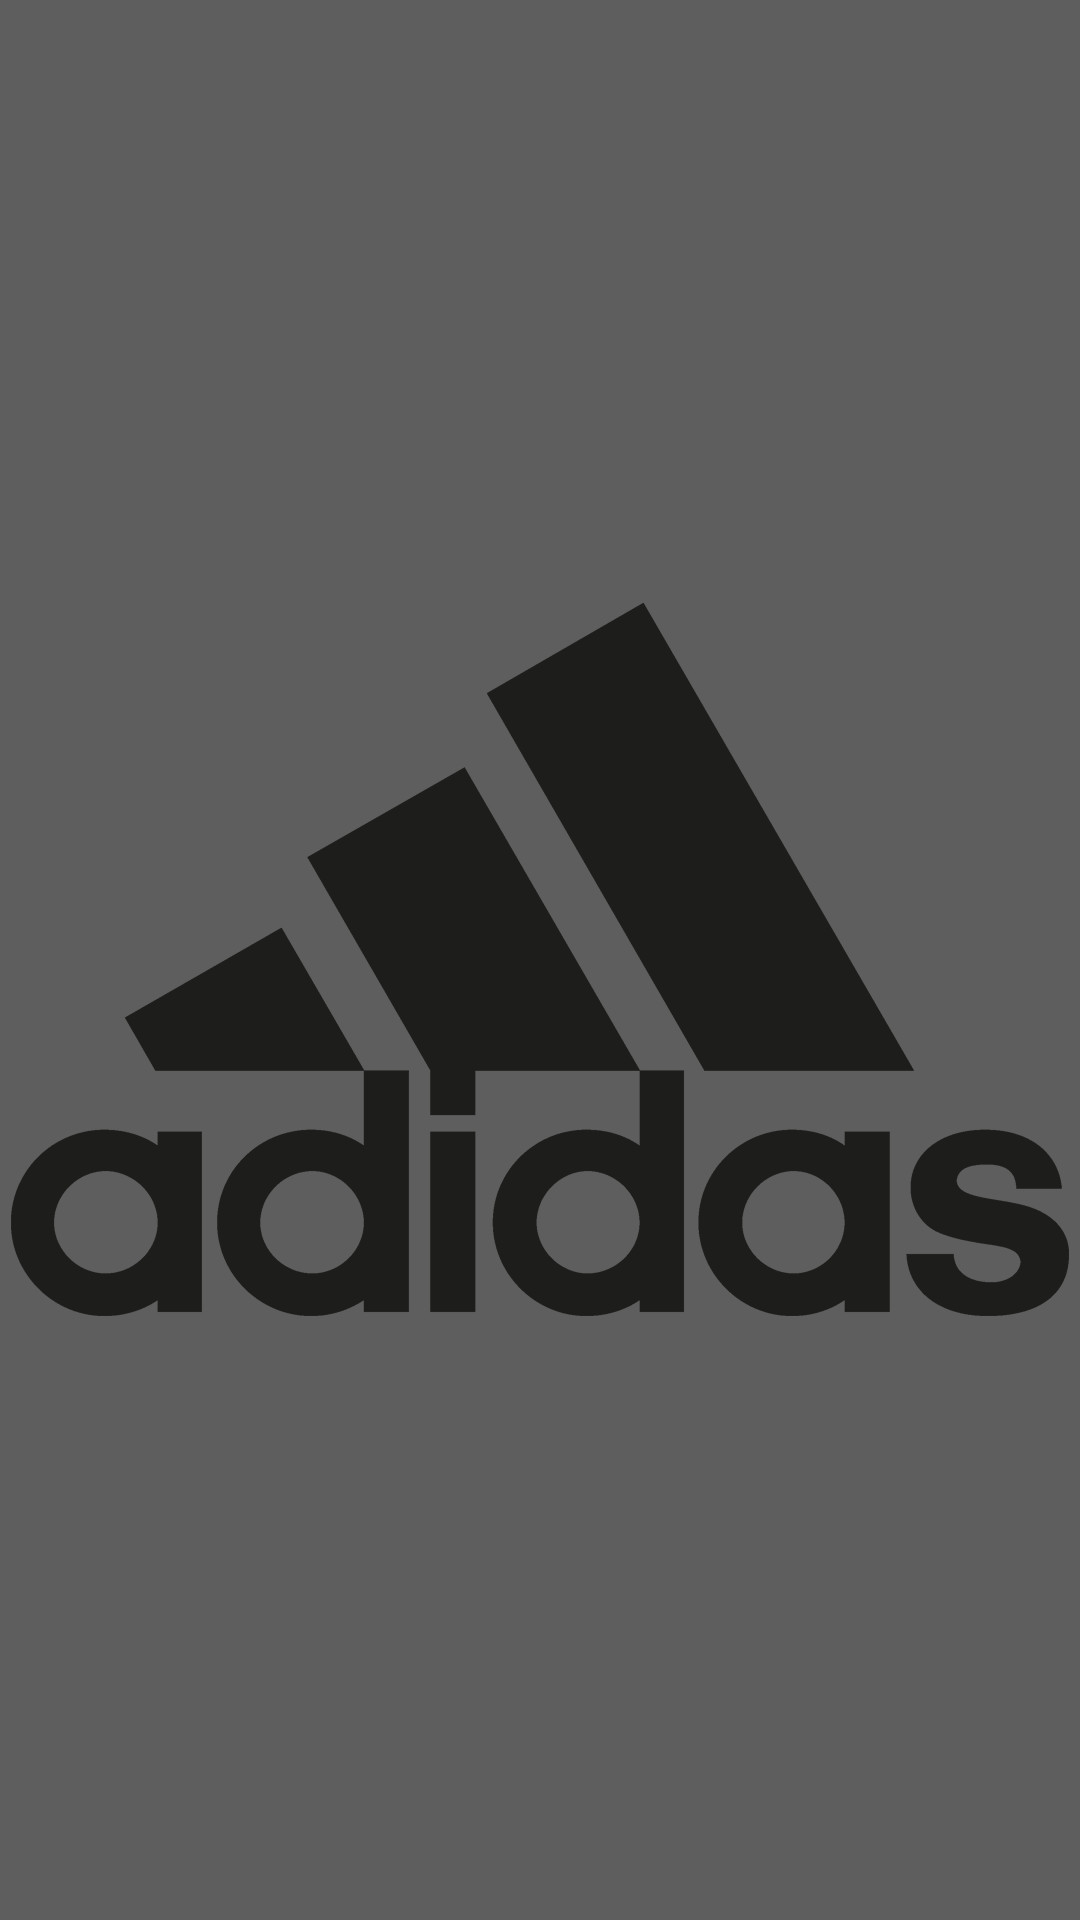 Adidas Iphone Wallpaper 72 Images